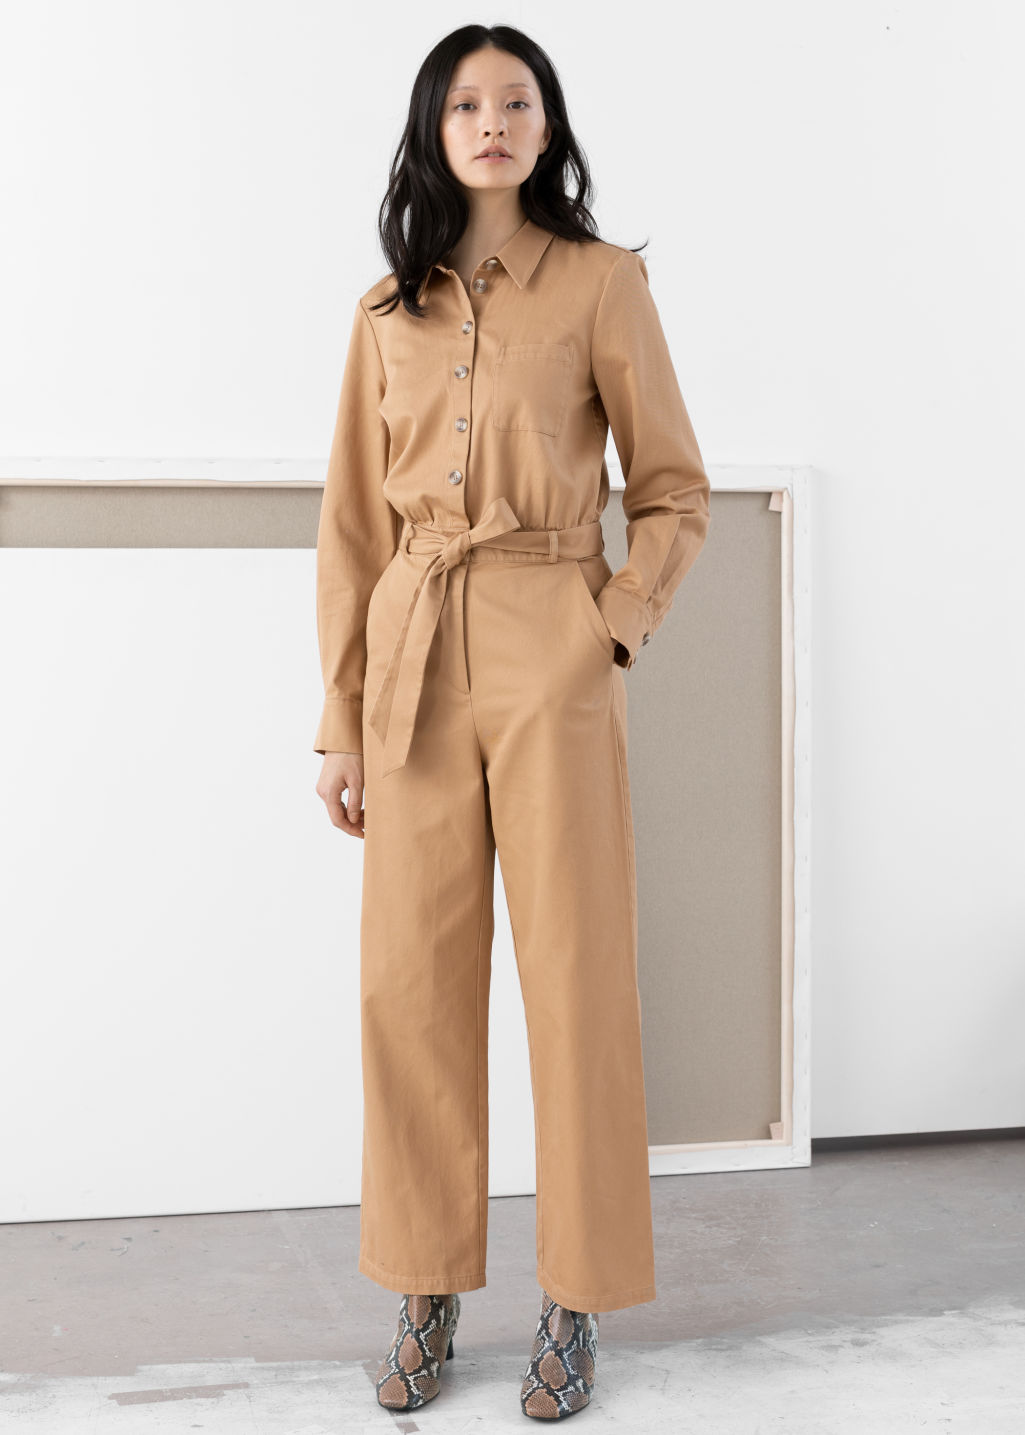 408a3bd51e Belted Cotton Boilersuit - Beige - Jumpsuits   Playsuits -   Other Stories